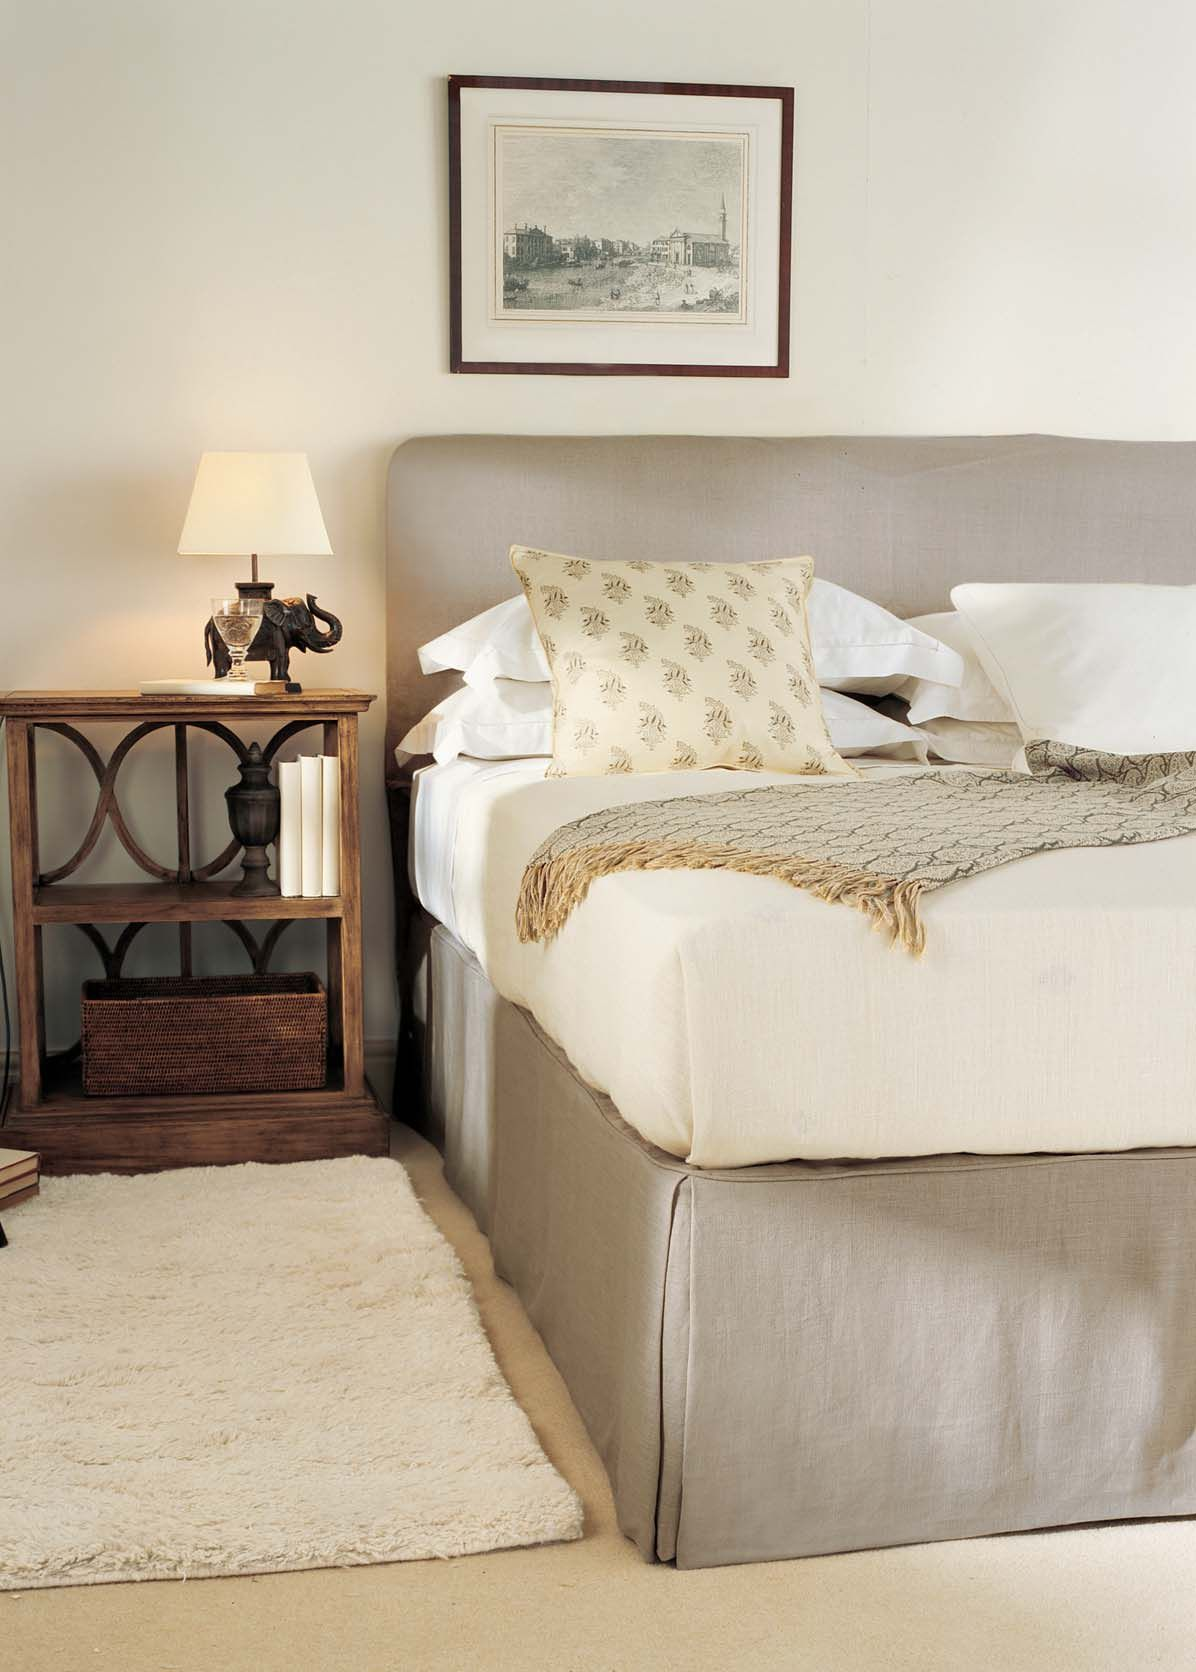 Natural linen headboard cover and valance by OKA. | Decor tips ...